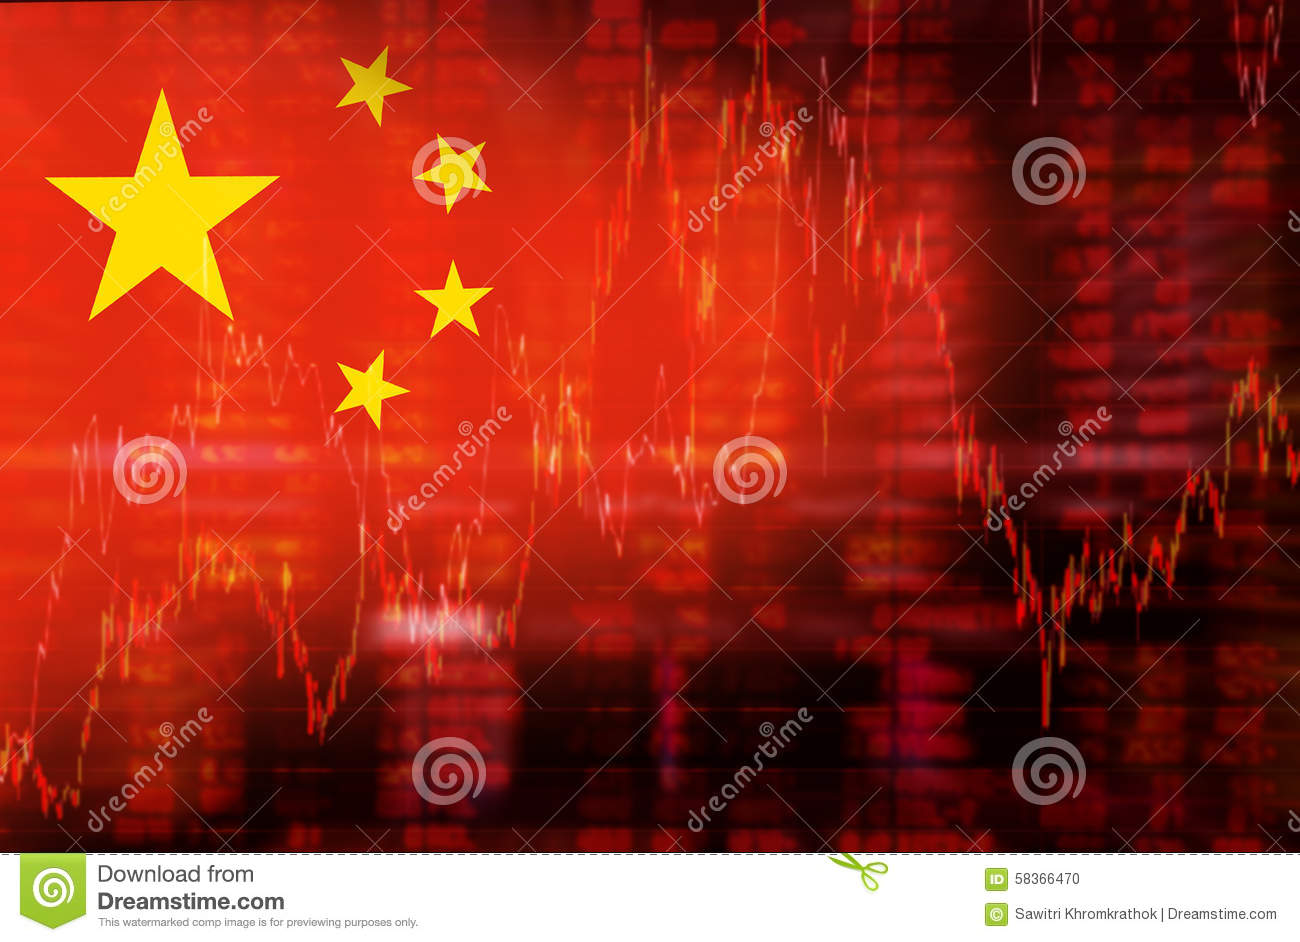 Flag of China downtrend stock diagram